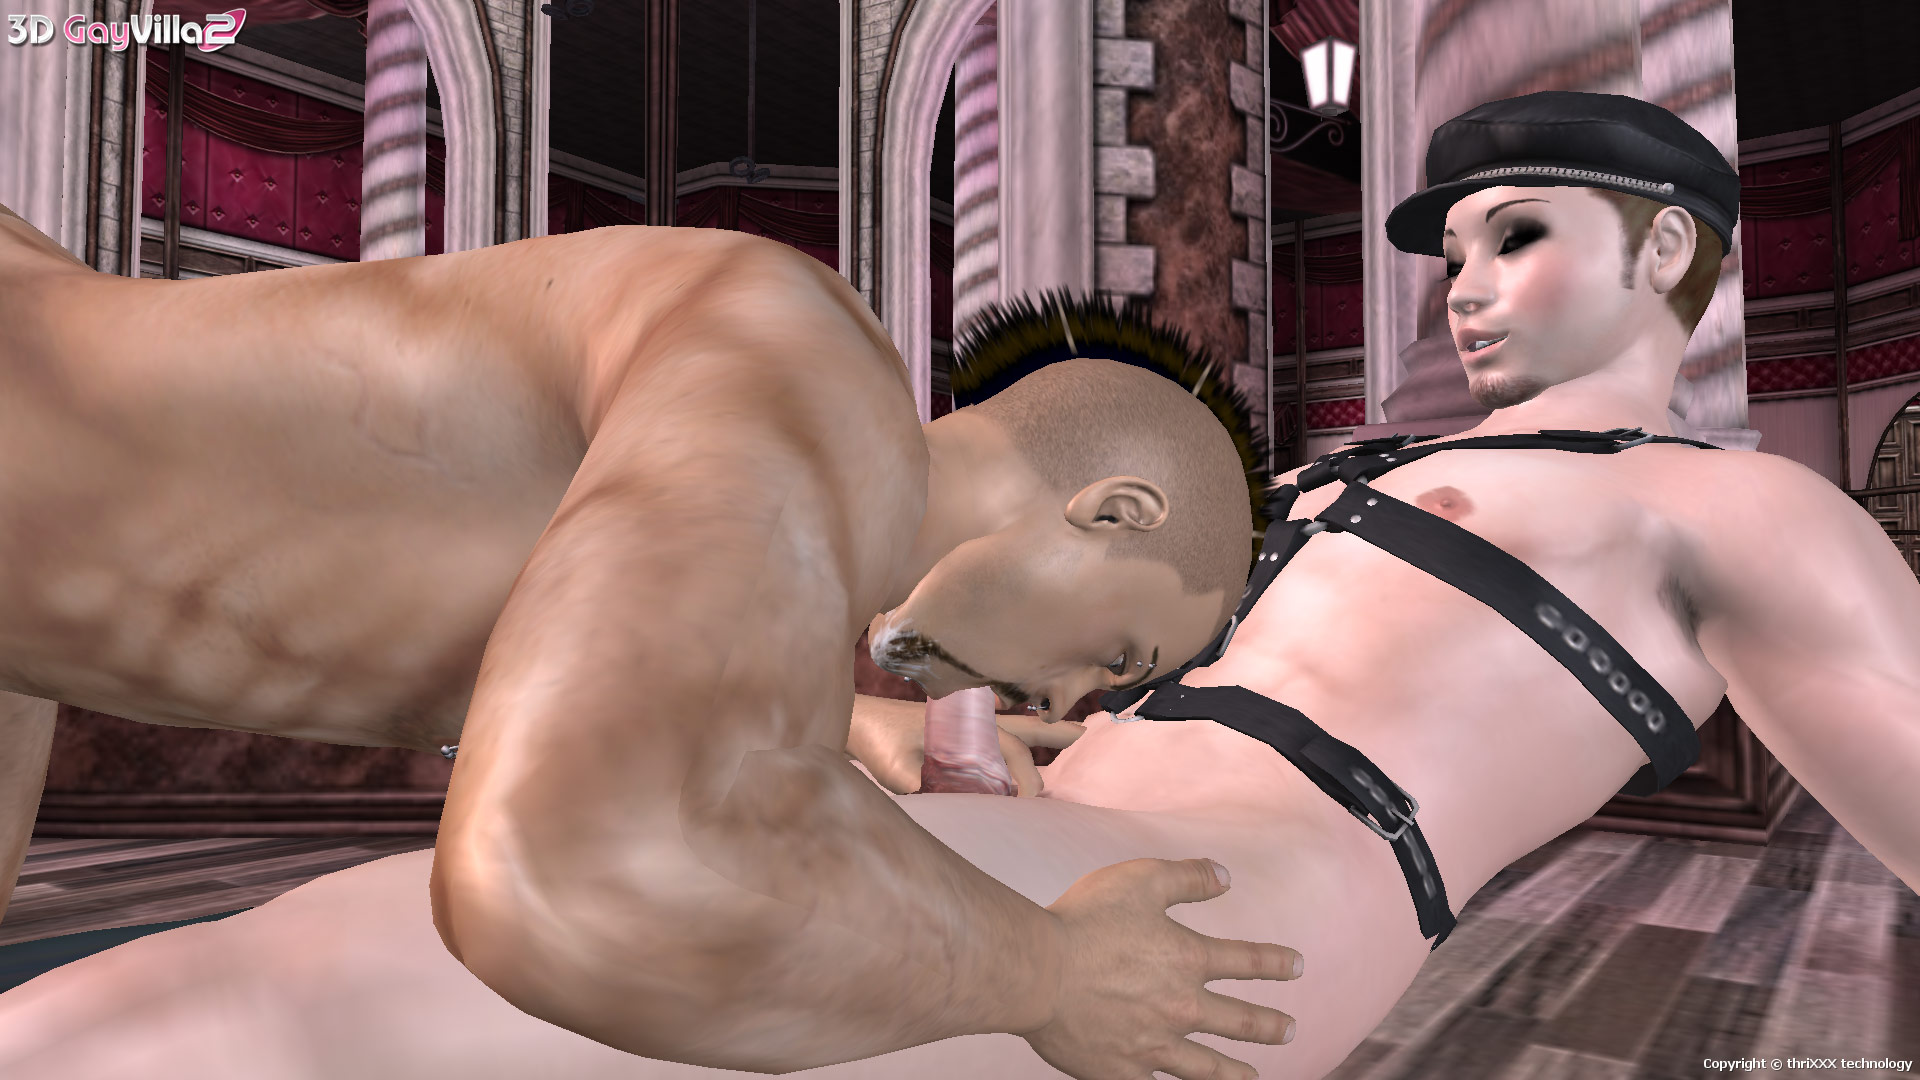 from Noel gay 3d free sex video